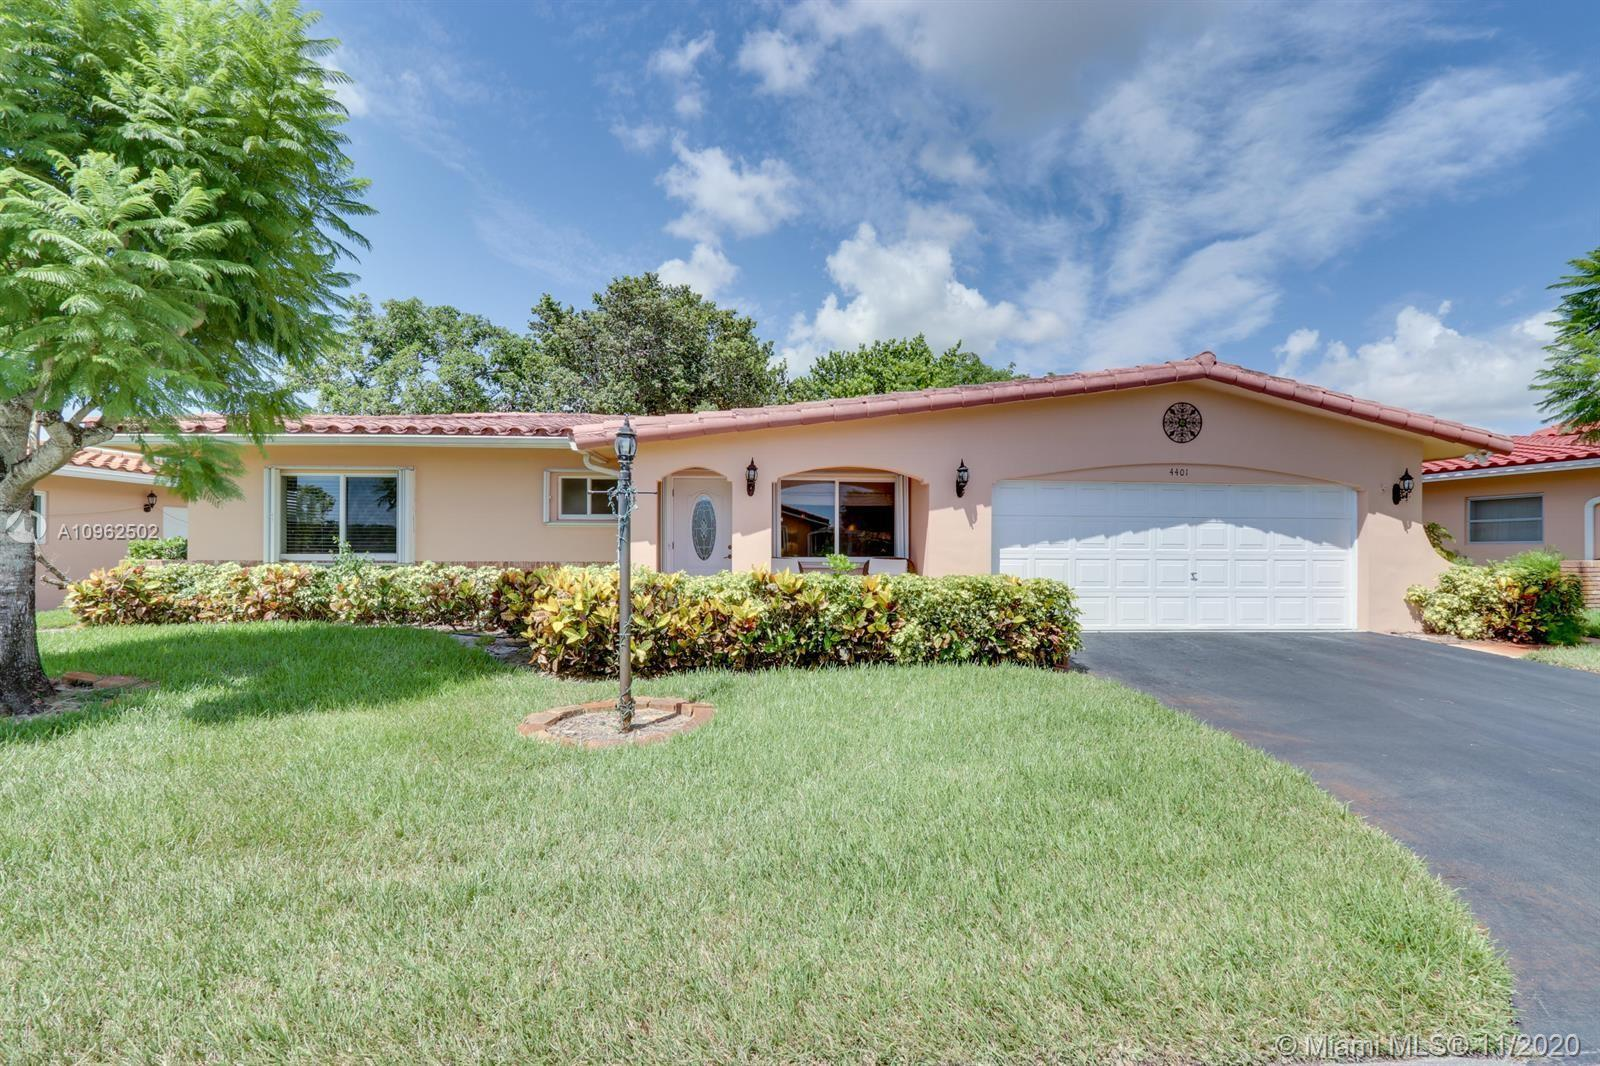 Beautiful LAKE VIEW home located on quiet street in 55+ neighborhood. The kitchen has gorgeous grani